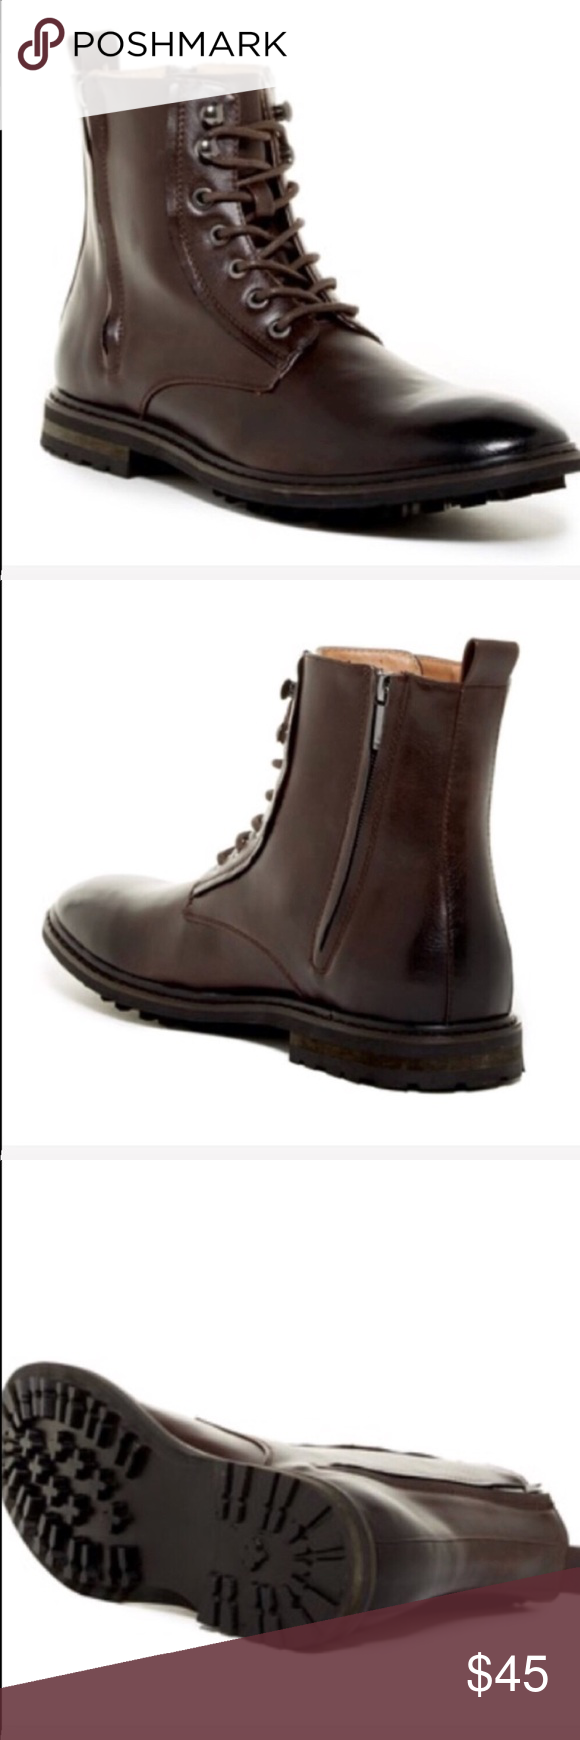 4adf2ceee13 Robert Wayne Thatcher Brown Boot BRAND NEW NEVER WORN WITH TAGS ...